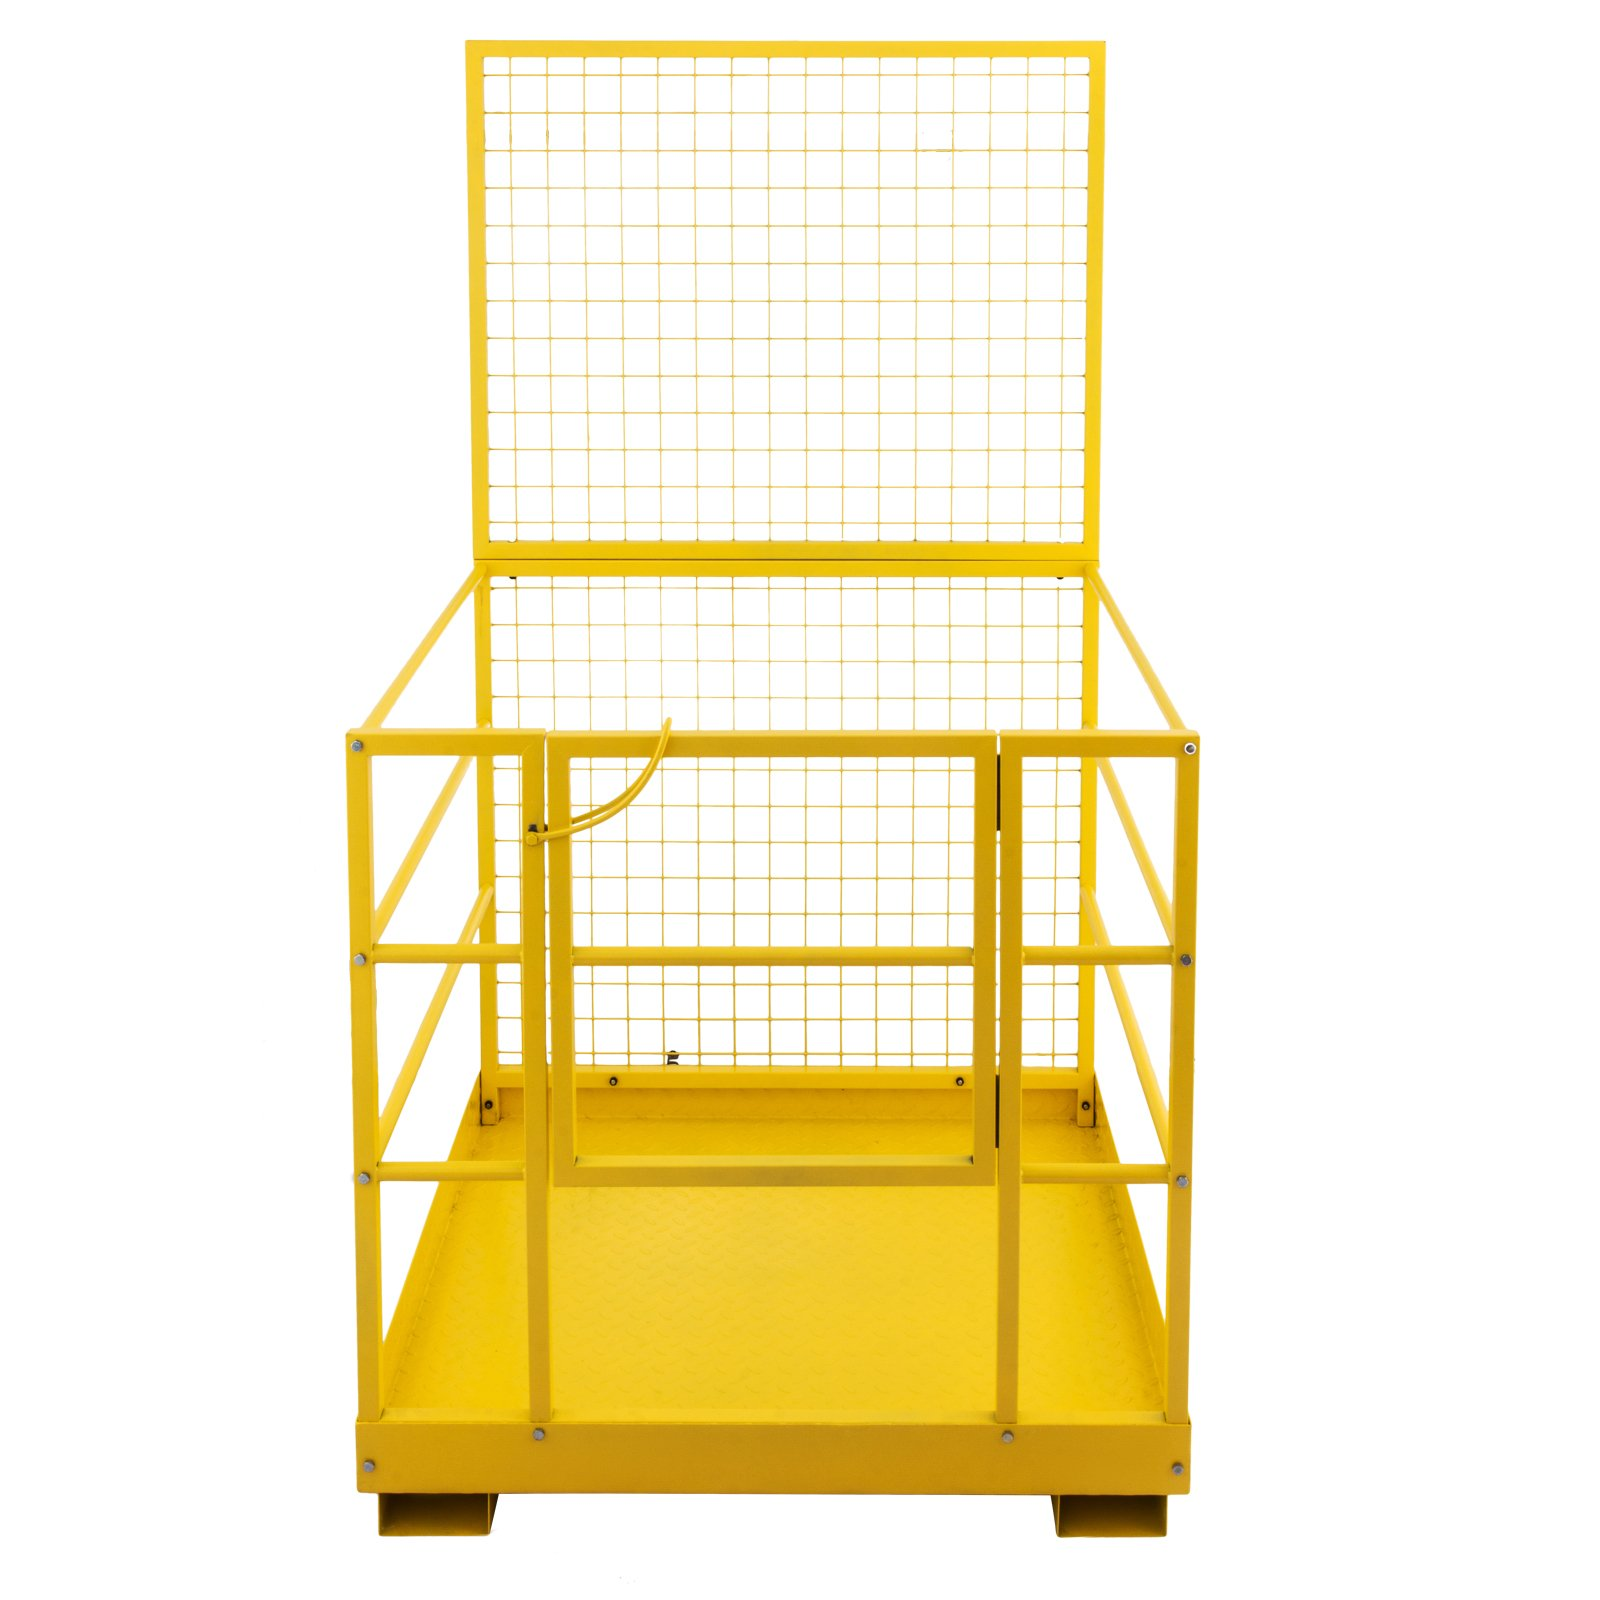 """Mophorn Forklift Safety Cage 45 x 43 Inch Fork Lift Work Platform 1200lbs Capacity Heavy Duty Steel Forklift Safety Lift Basket Aerial Fence Rails Yellow Pallet loader Fork lift Safety Cage (45""""x43"""")"""